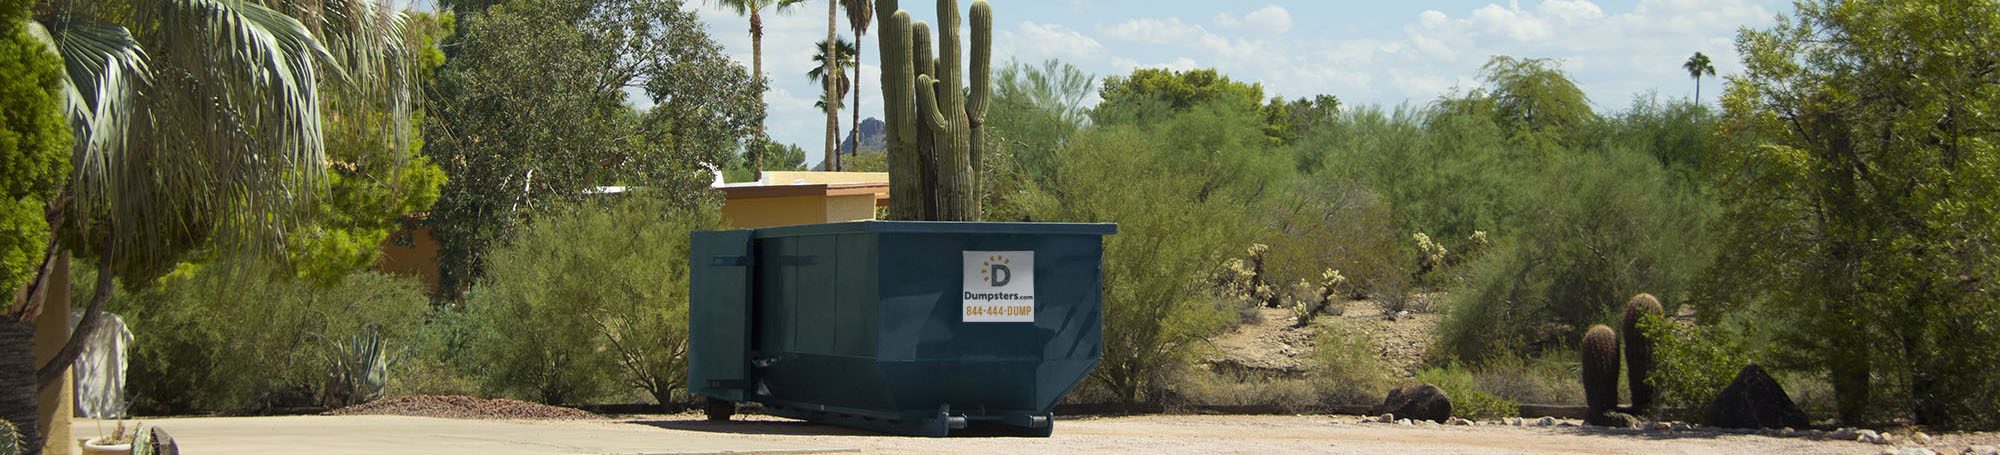 Dumpster in Desert Surrounded by Cacti.